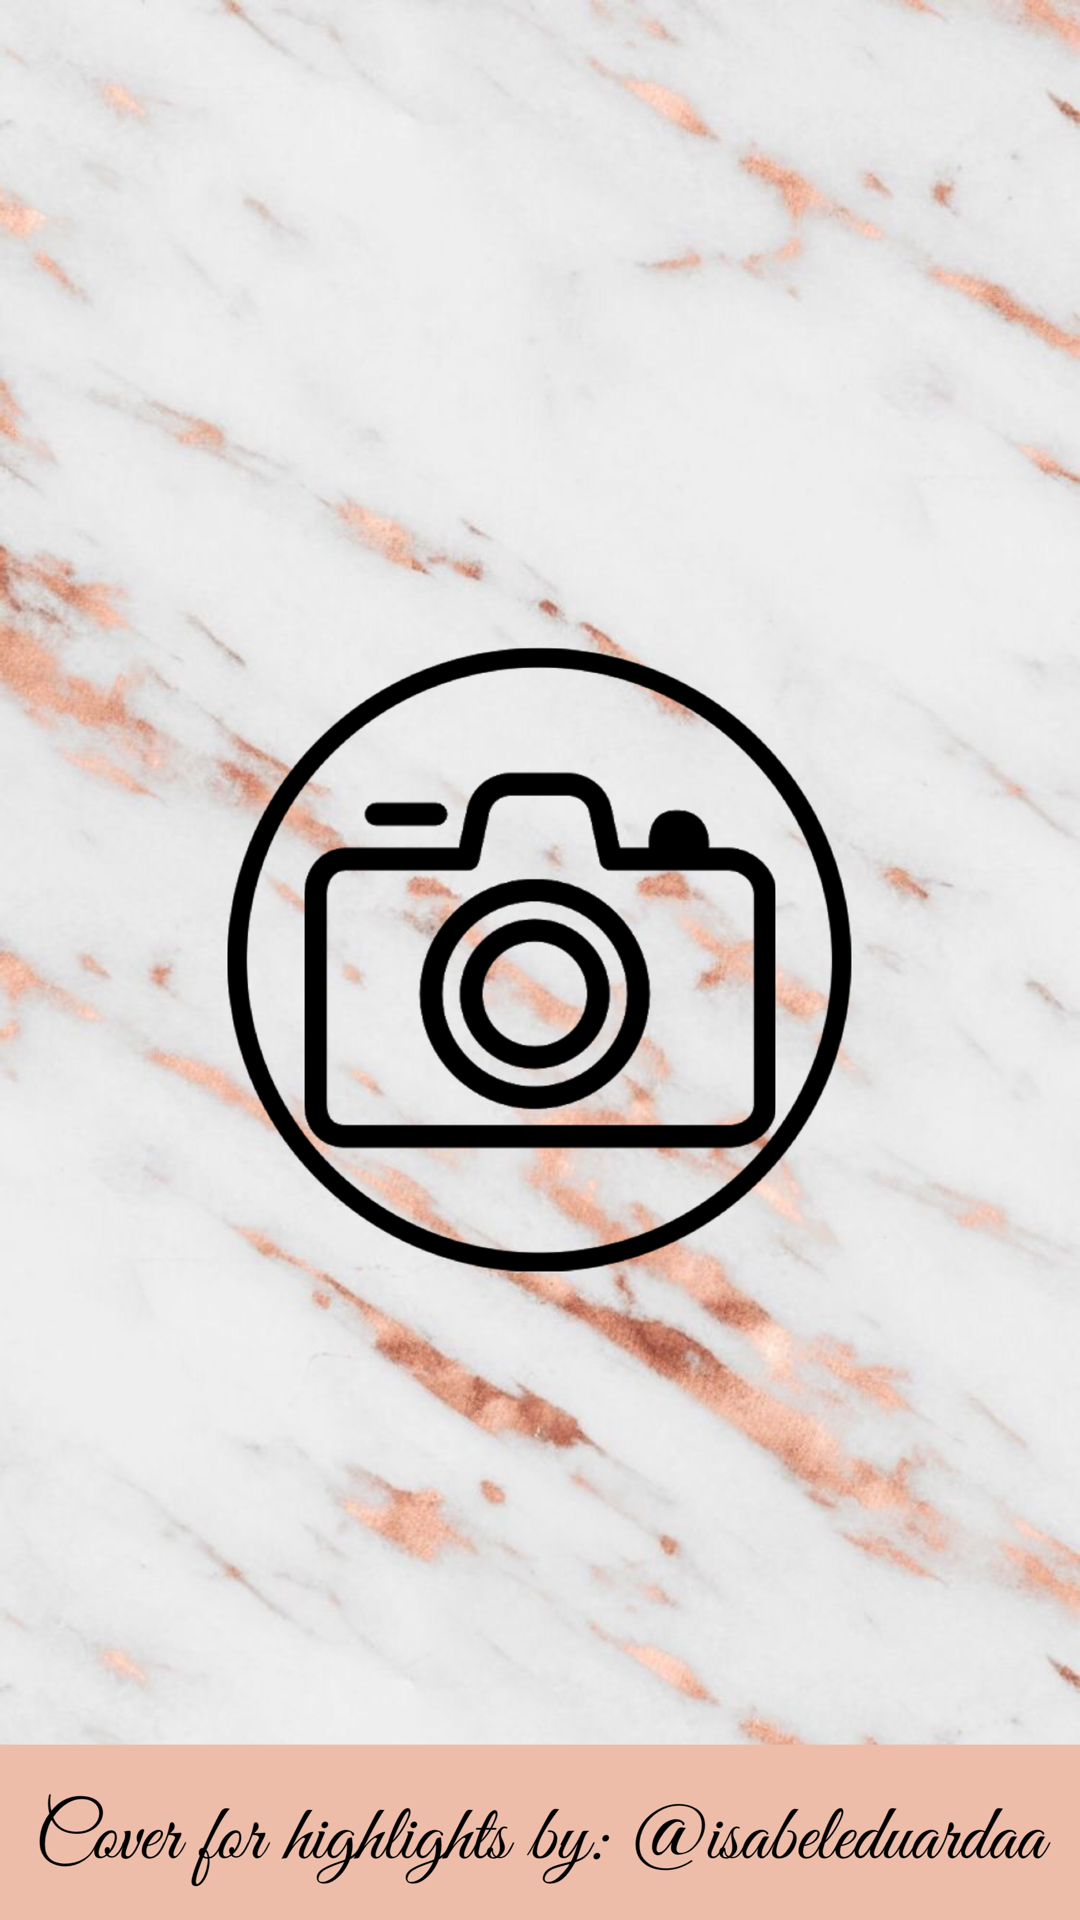 cover for highlights by isabeleduardaa Instagram logo